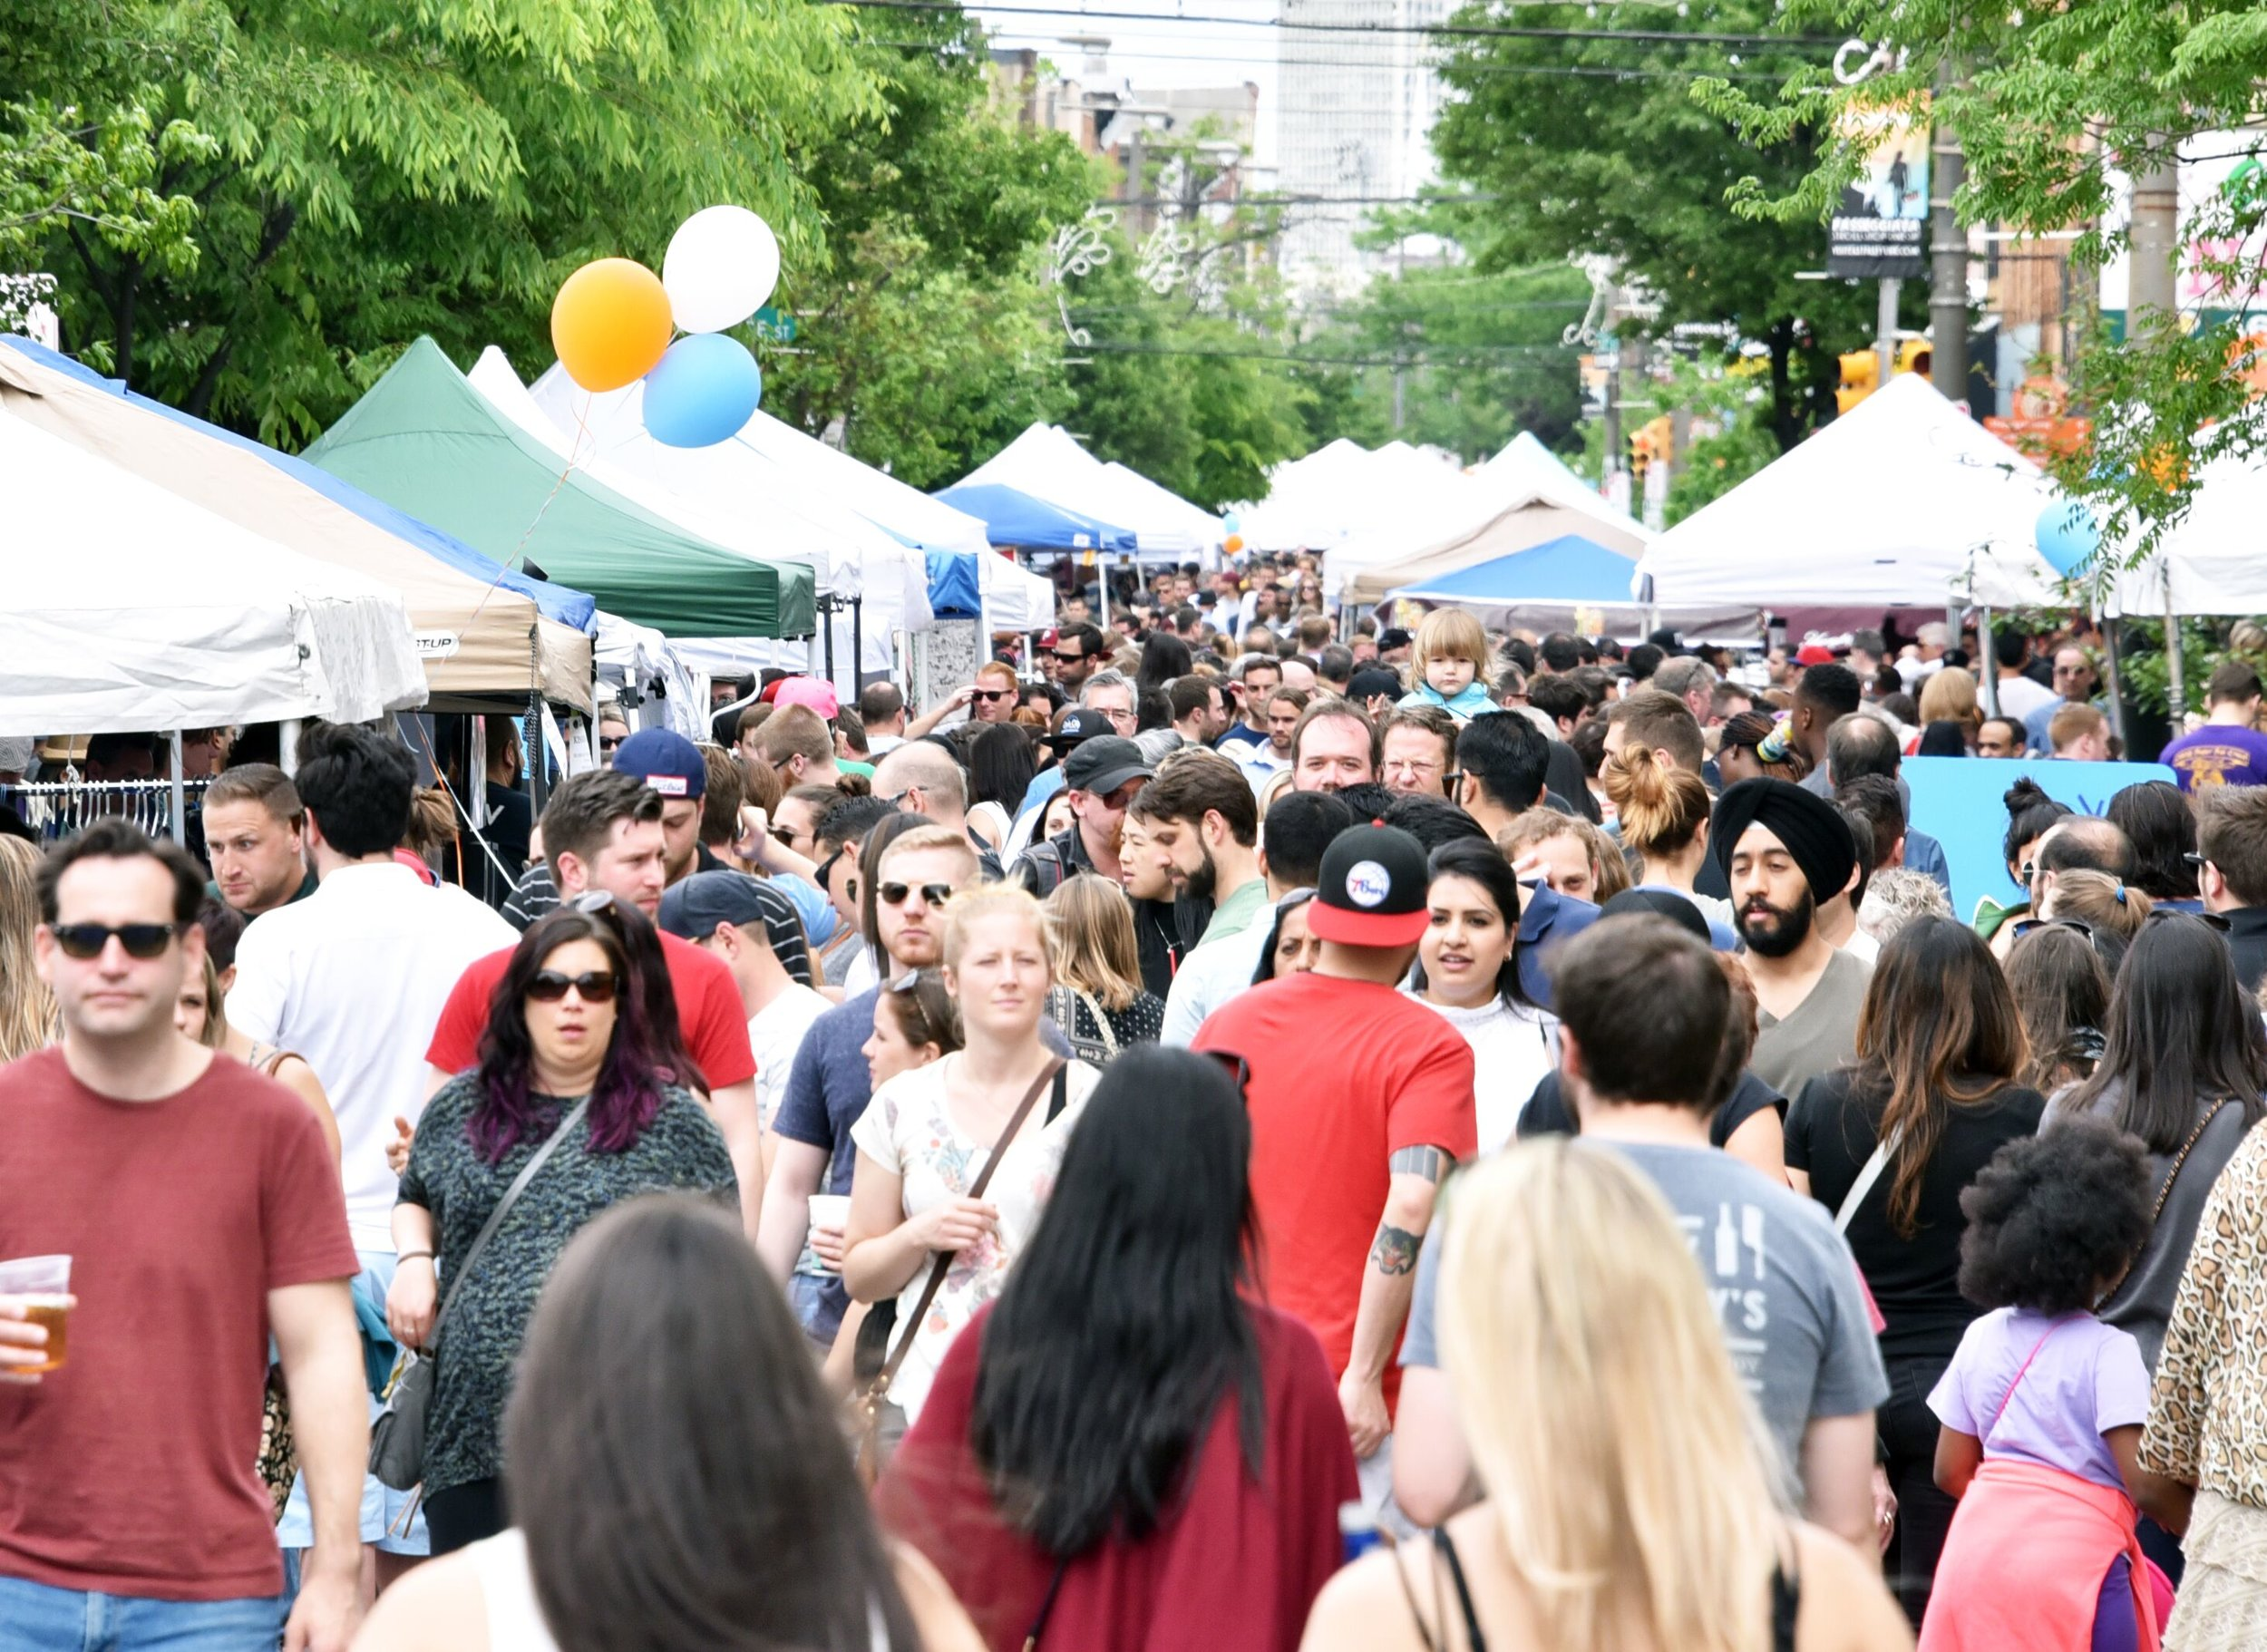 Flavors on the Avenue Food Festival Crowd 2018